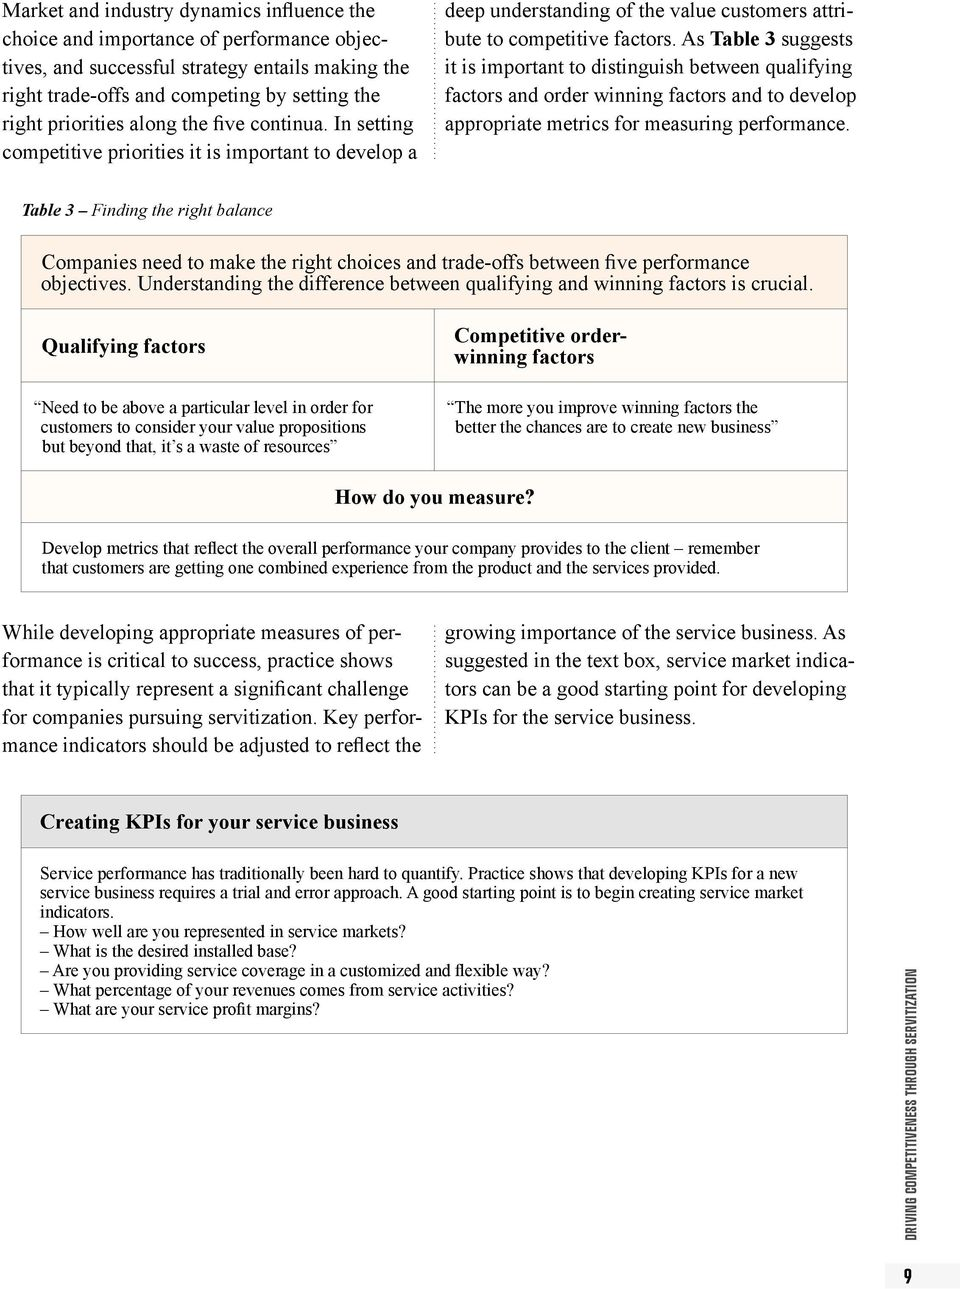 As Table 3 suggests it is important to distinguish between qualifying factors and order winning factors and to develop appropriate metrics for measuring performance.